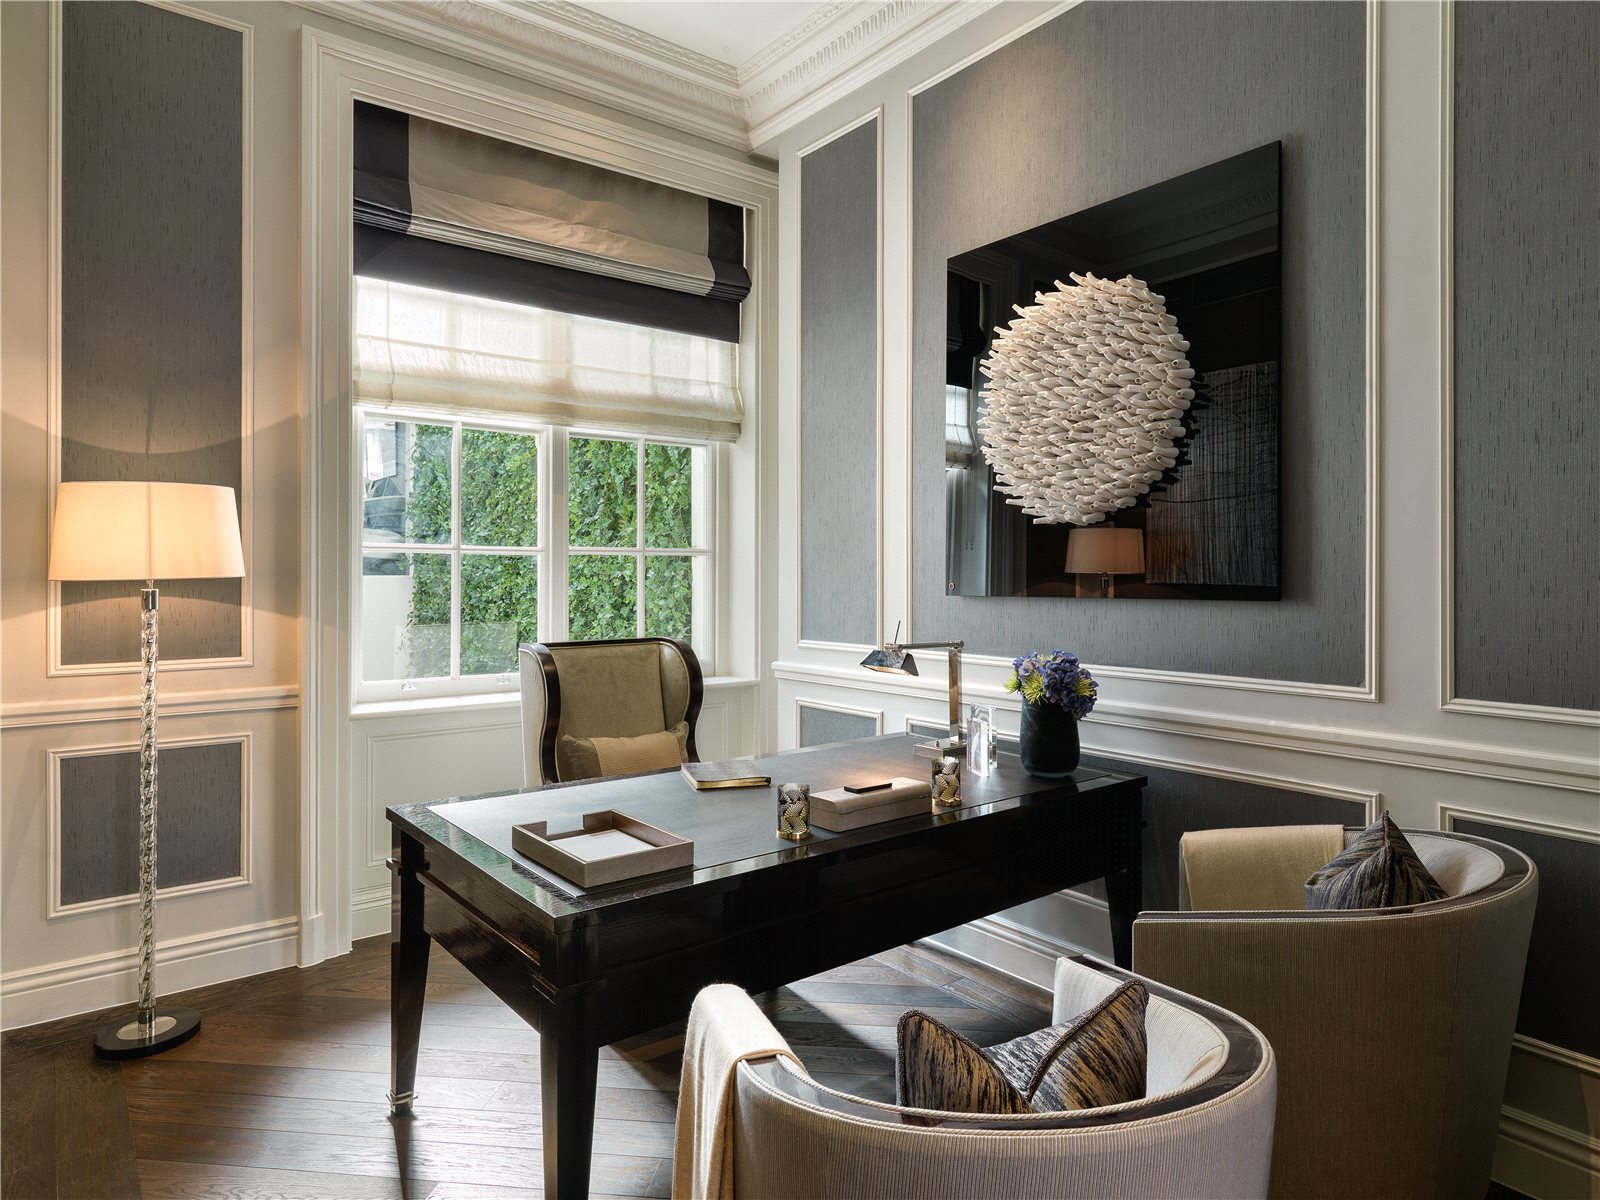 Chester square belgravia london sw w a luxury home for